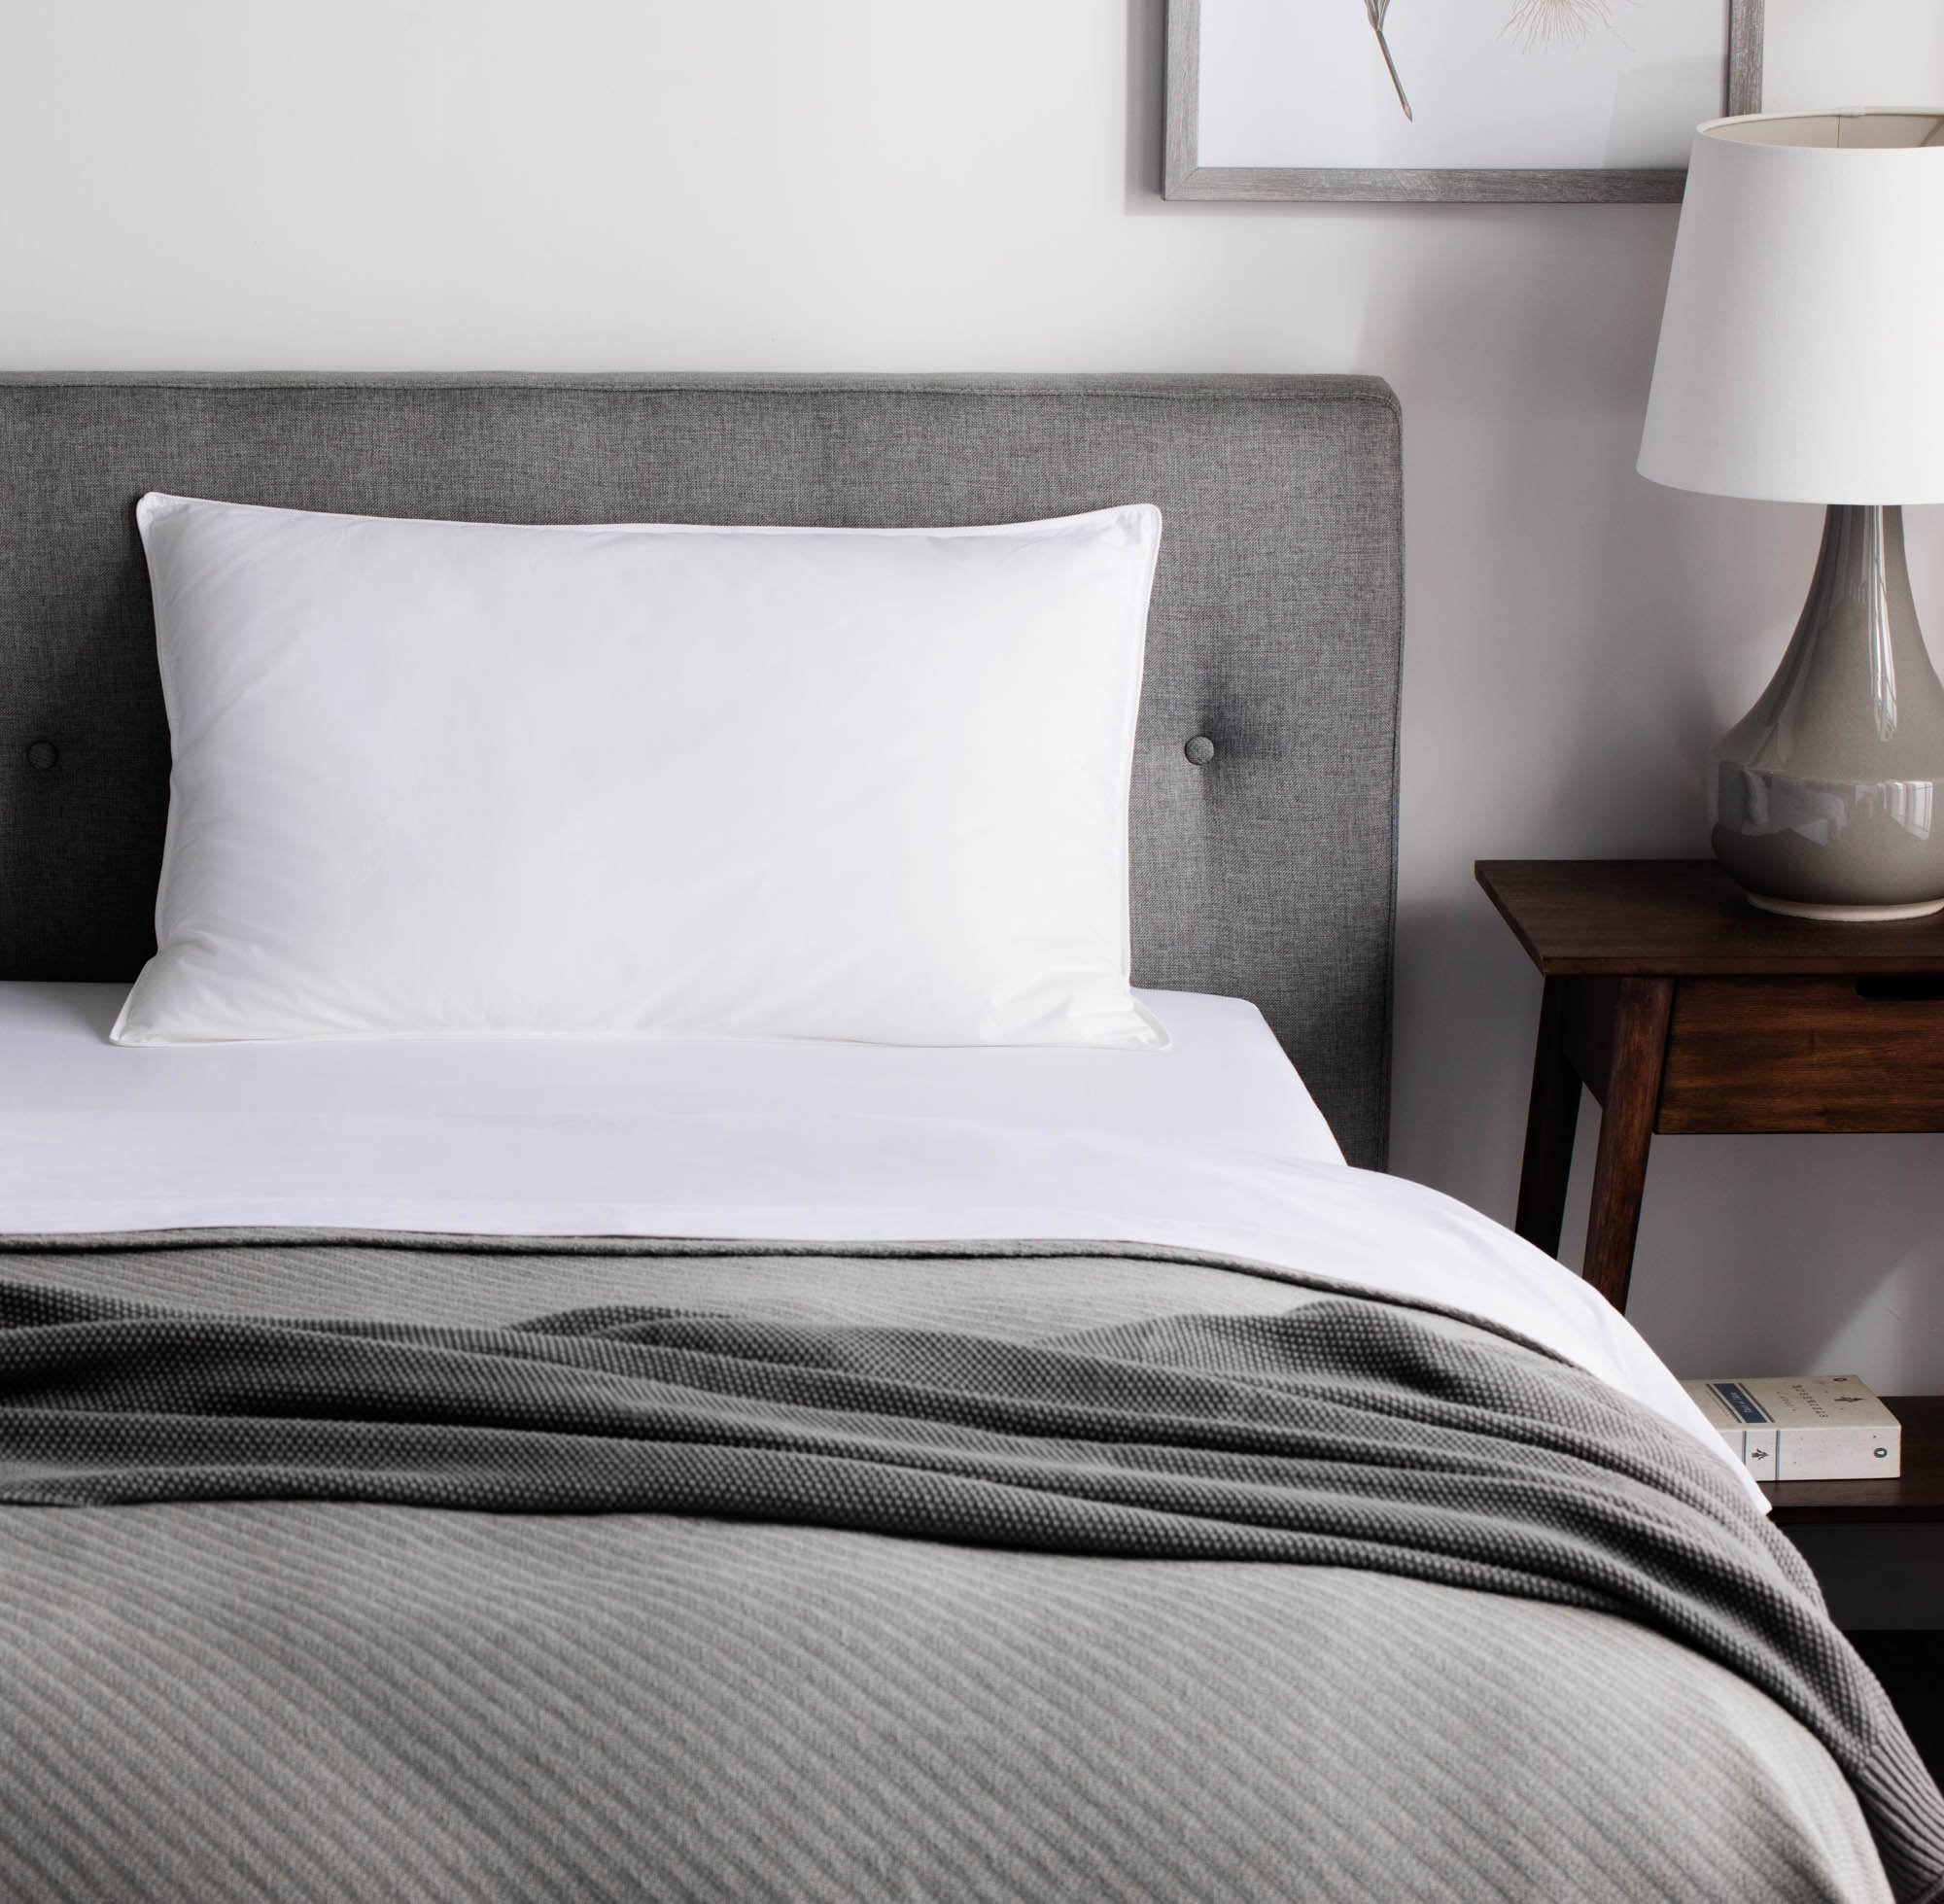 WEEKENDER Down Alternative Hotel Quality 100% Cotton Cover-Soft Hypoallergenic King (1 Single Pillow), White by WEEKENDER